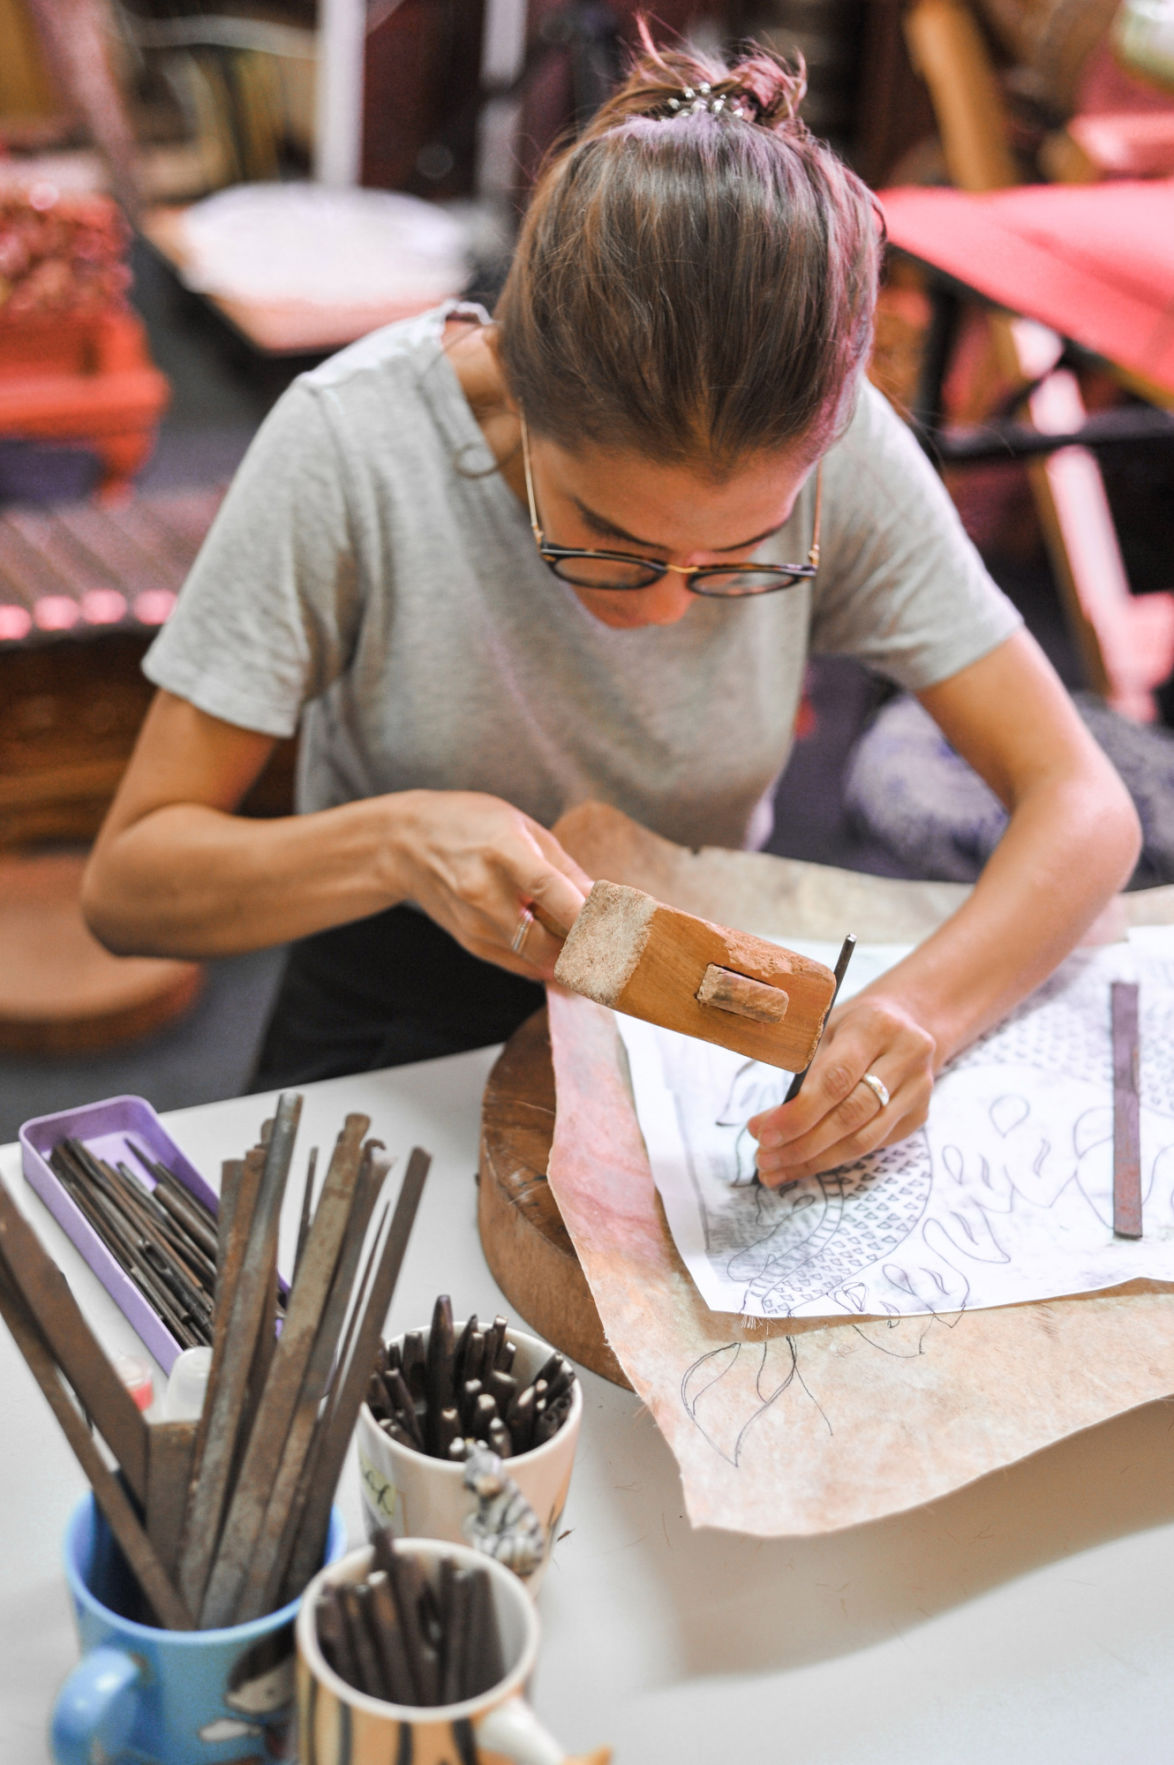 For crafty travelers, DIY classes are the ultimate souvenir